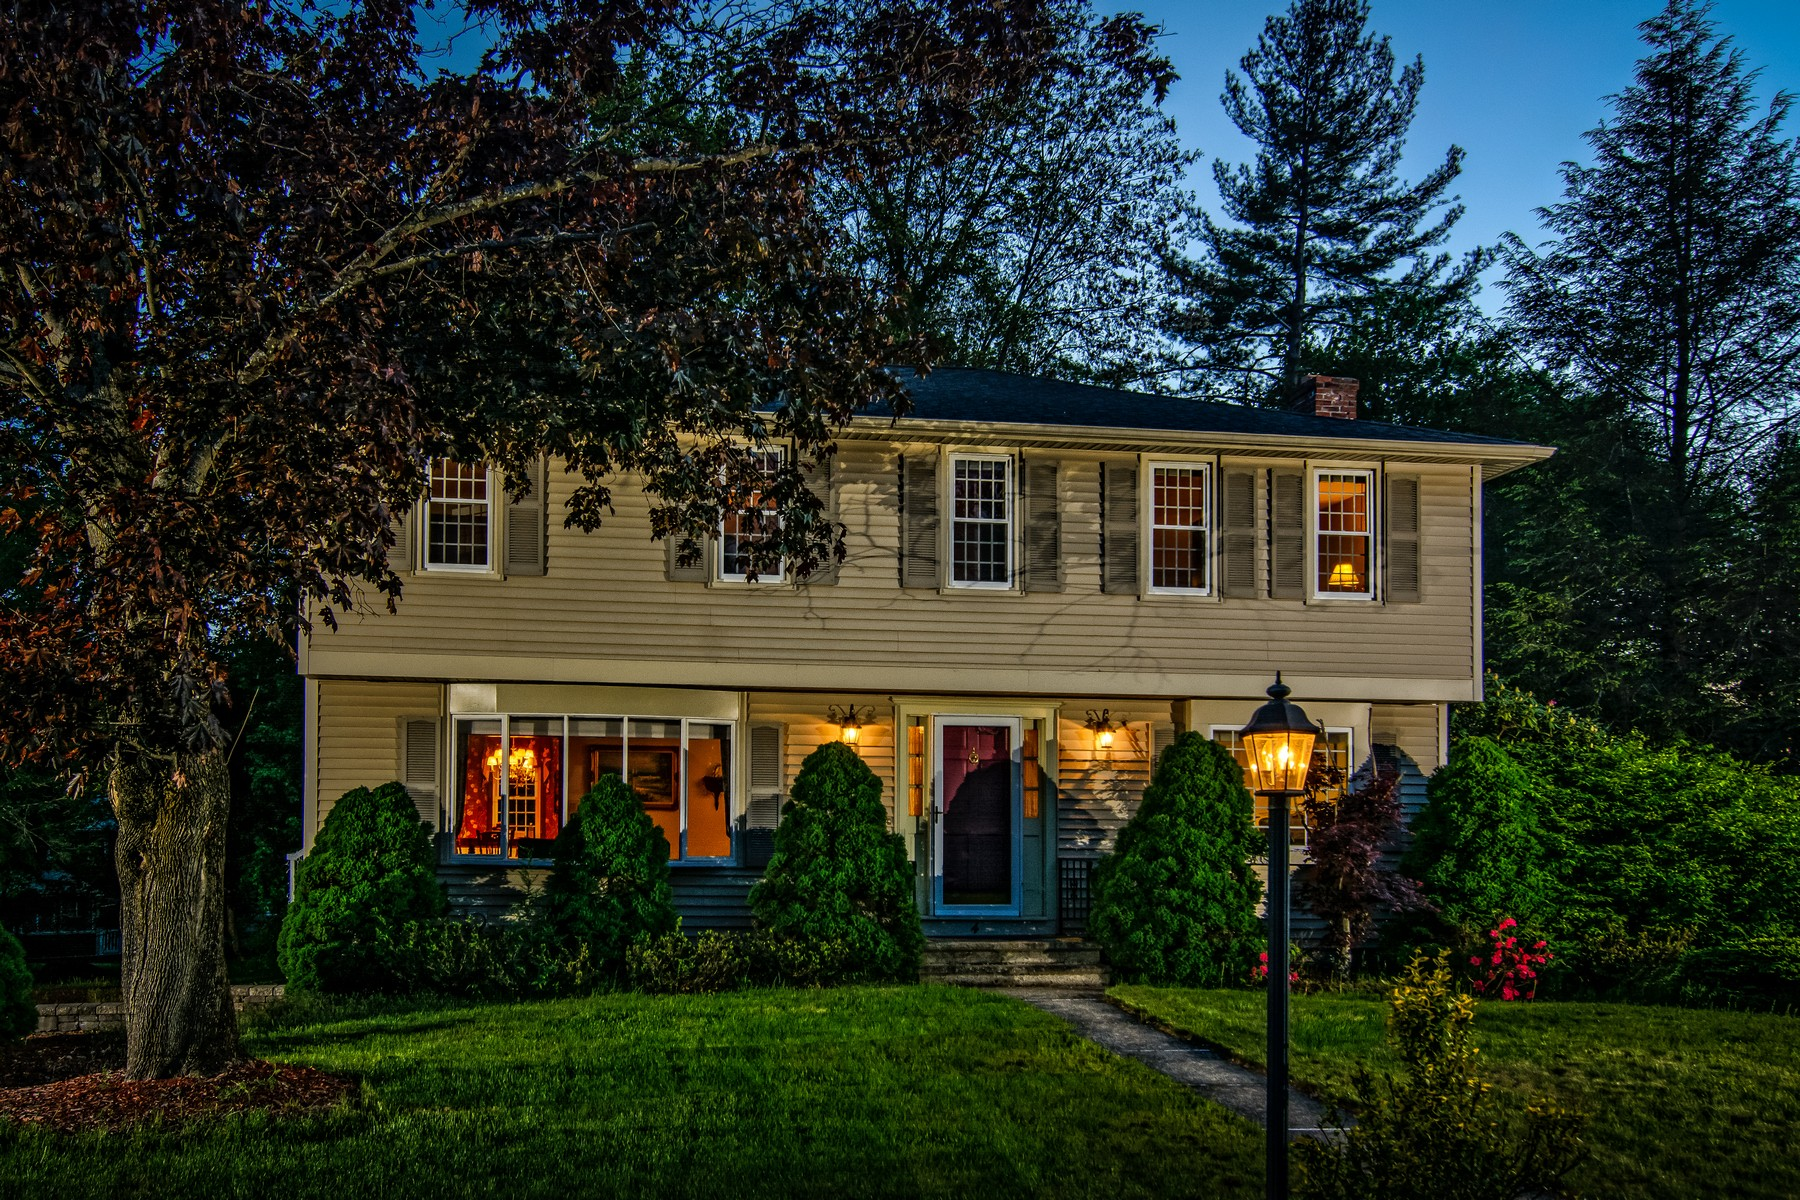 Single Family Home for Sale at Garrison Colonial With Hip Roof Architecture 4 Uhlman Drive Westborough, Massachusetts 01581 United States